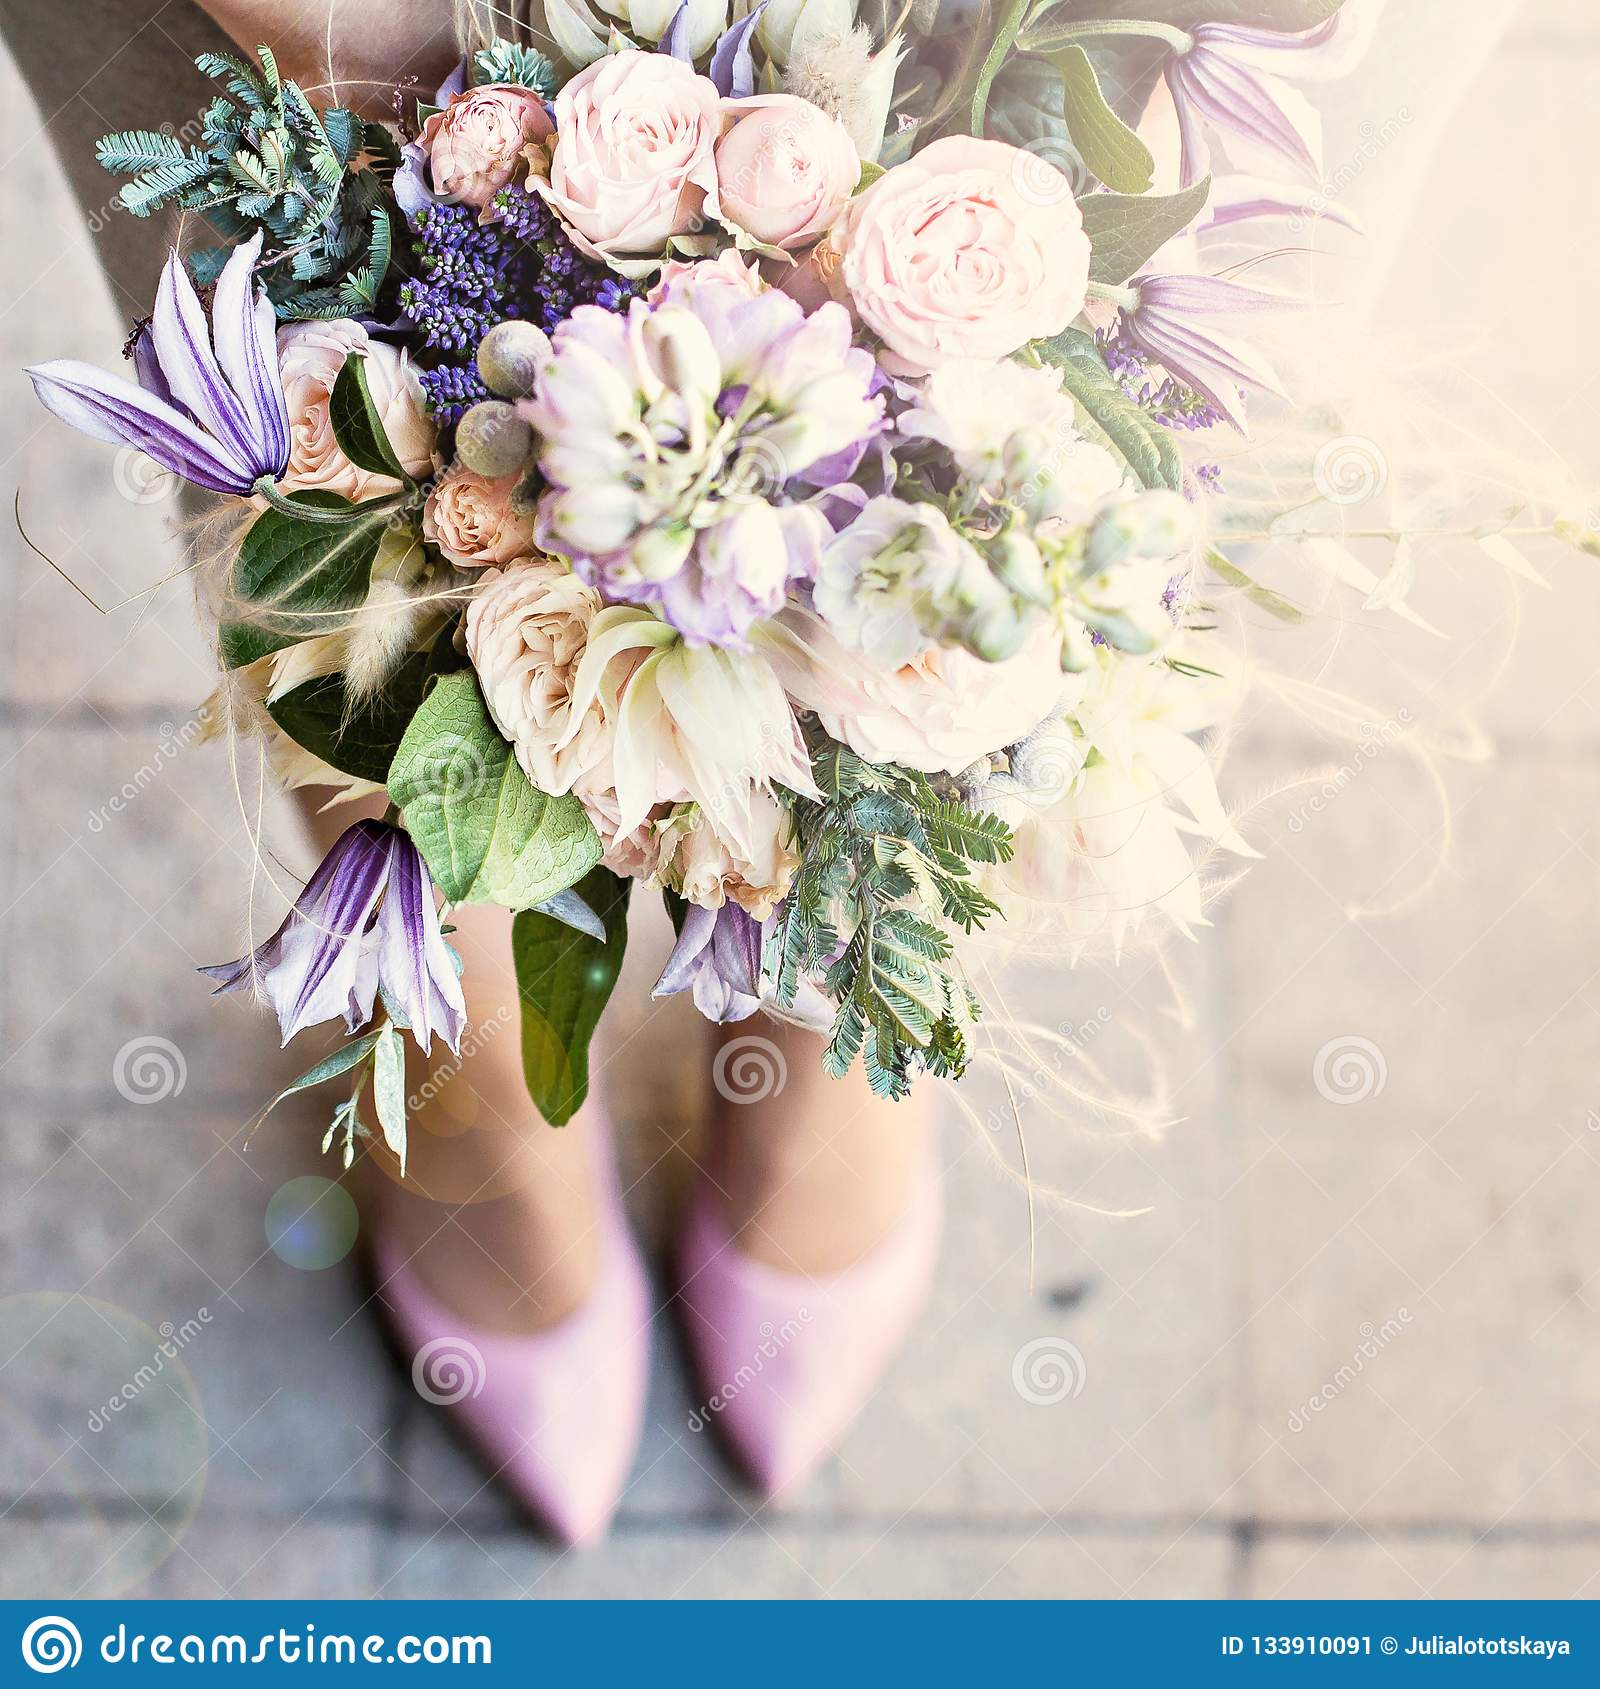 Beautiful bouquet with delicate flowers. Pink-white-purple bouquet. Bridal bouquet in female hands